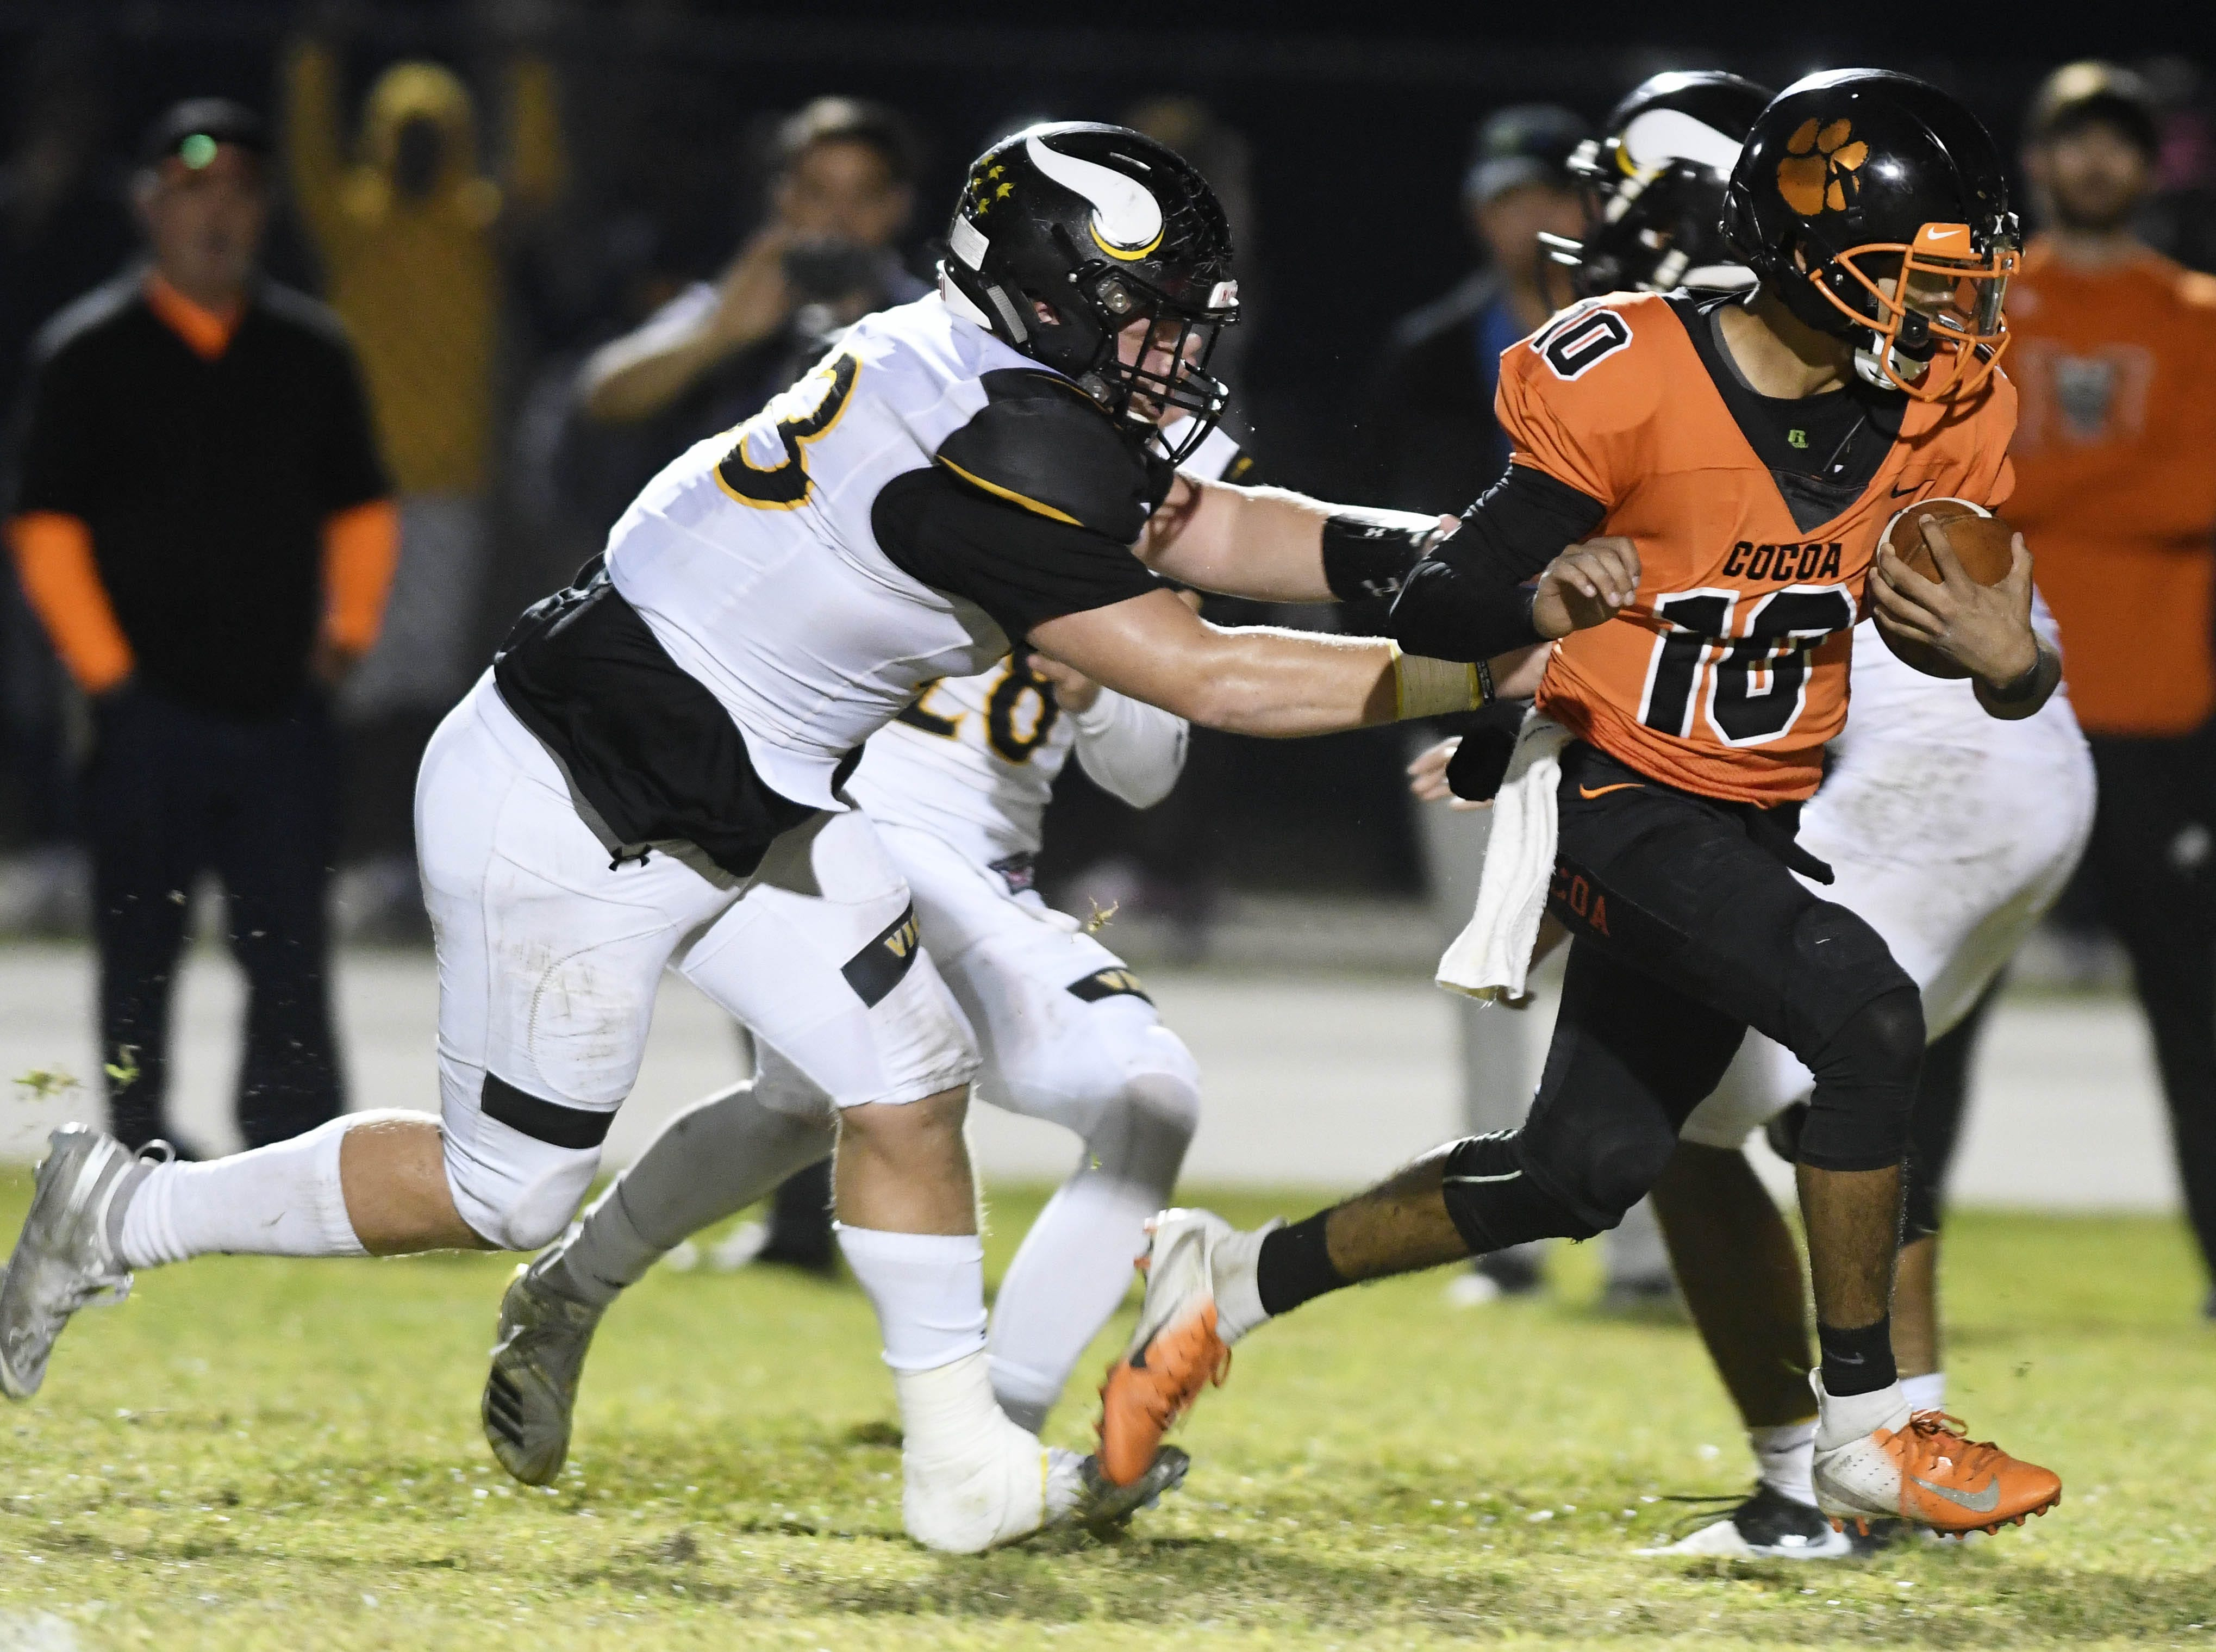 Cocoa QB Diego Arroyo is pursued by Brandon Peck (33) of Bishop Verot during Friday's game at Blake Stadium.